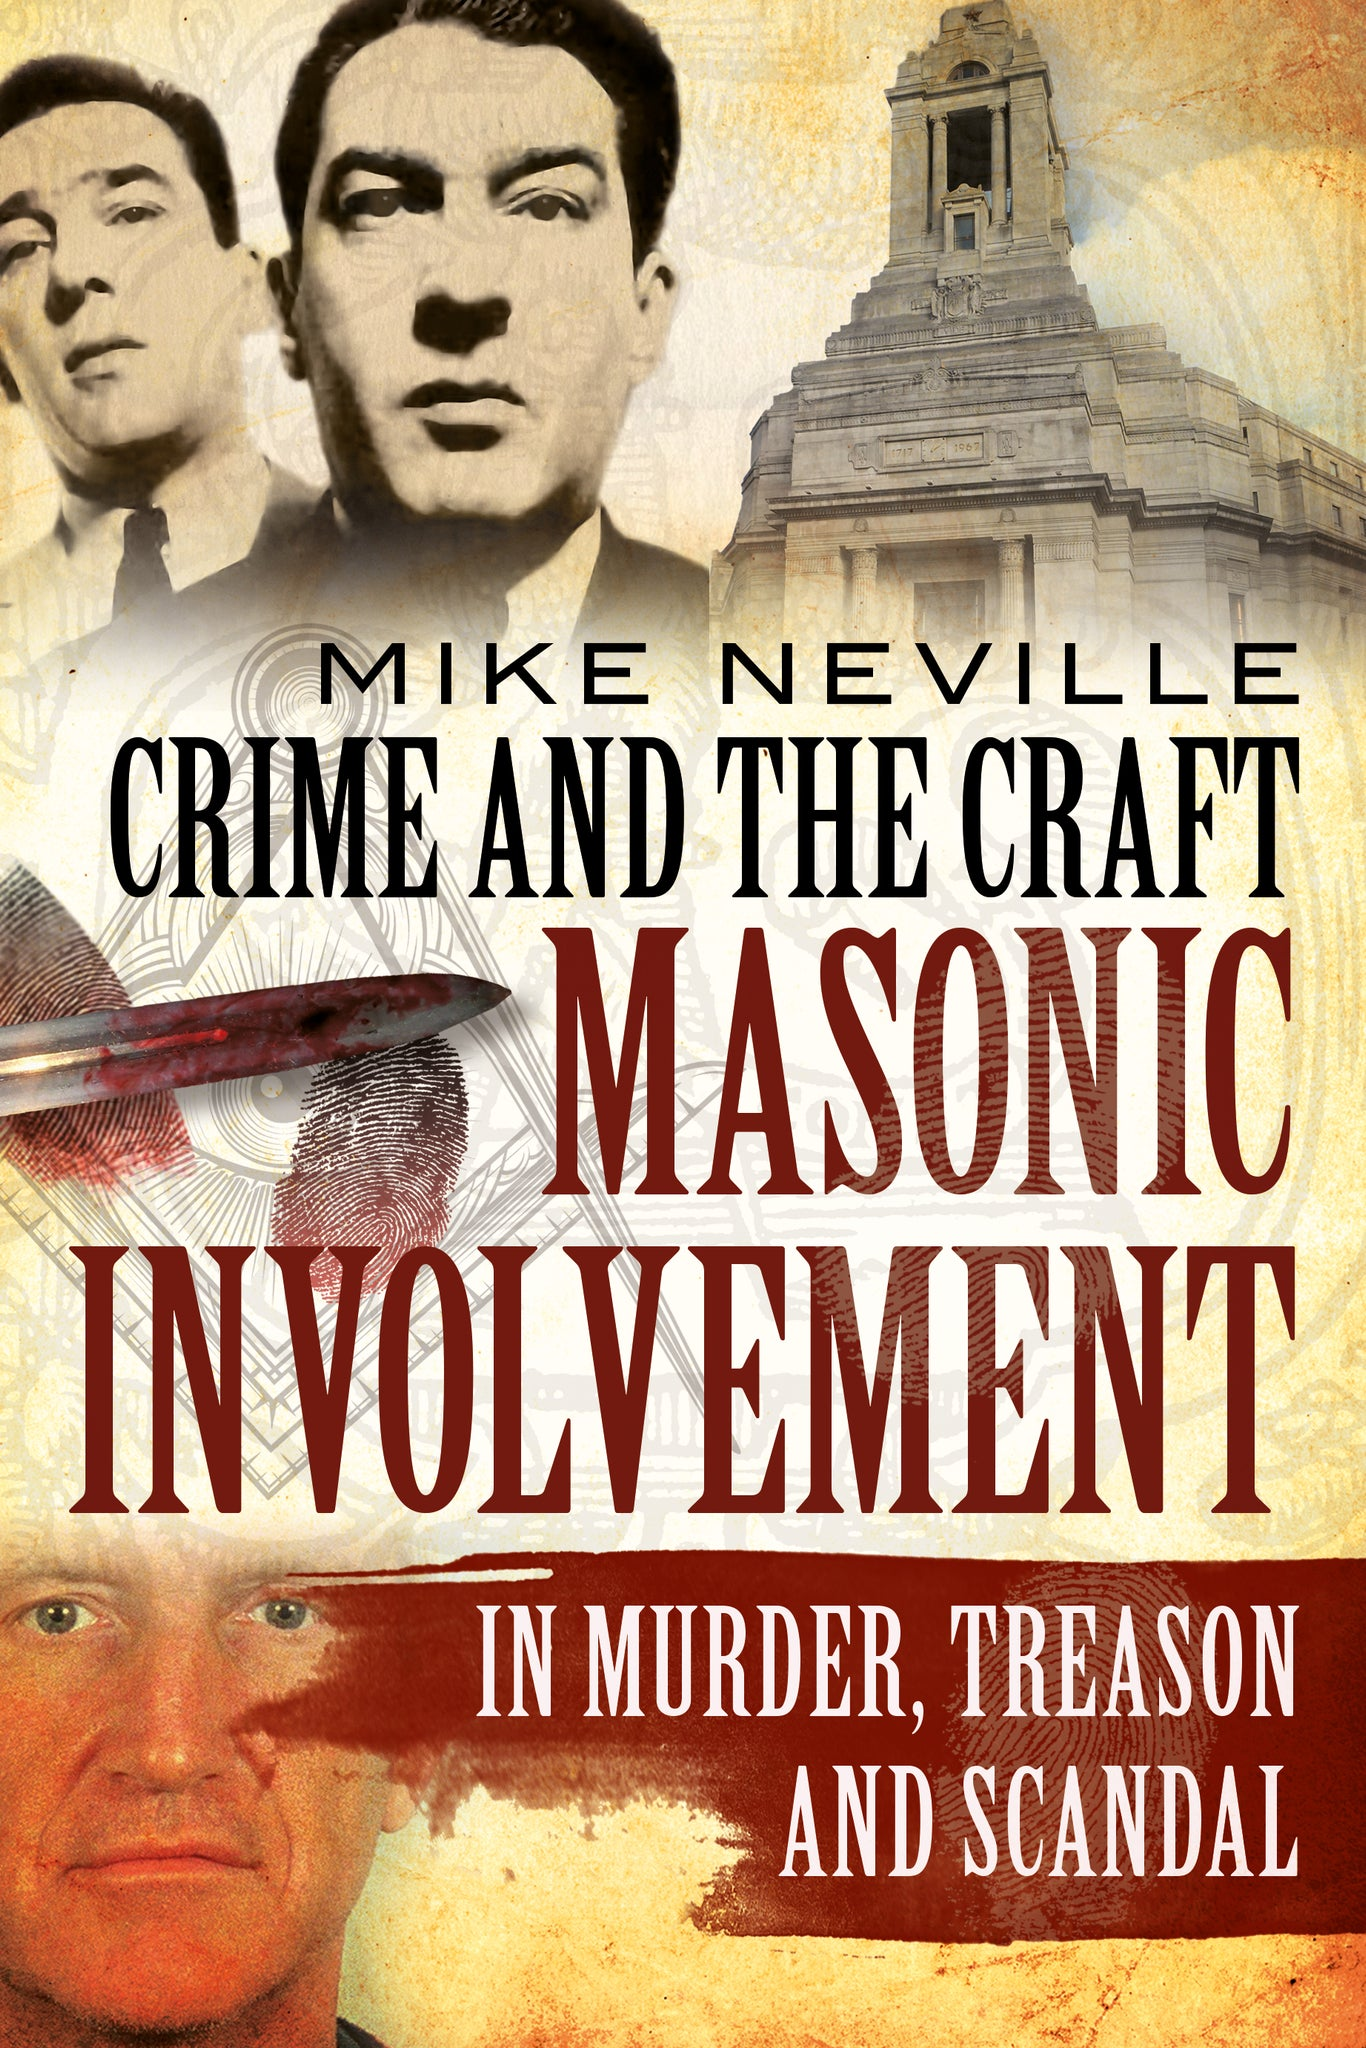 Crime and the Craft: Masonic Involvement in Murder, Treason and Scandal - published by Fonthill Media